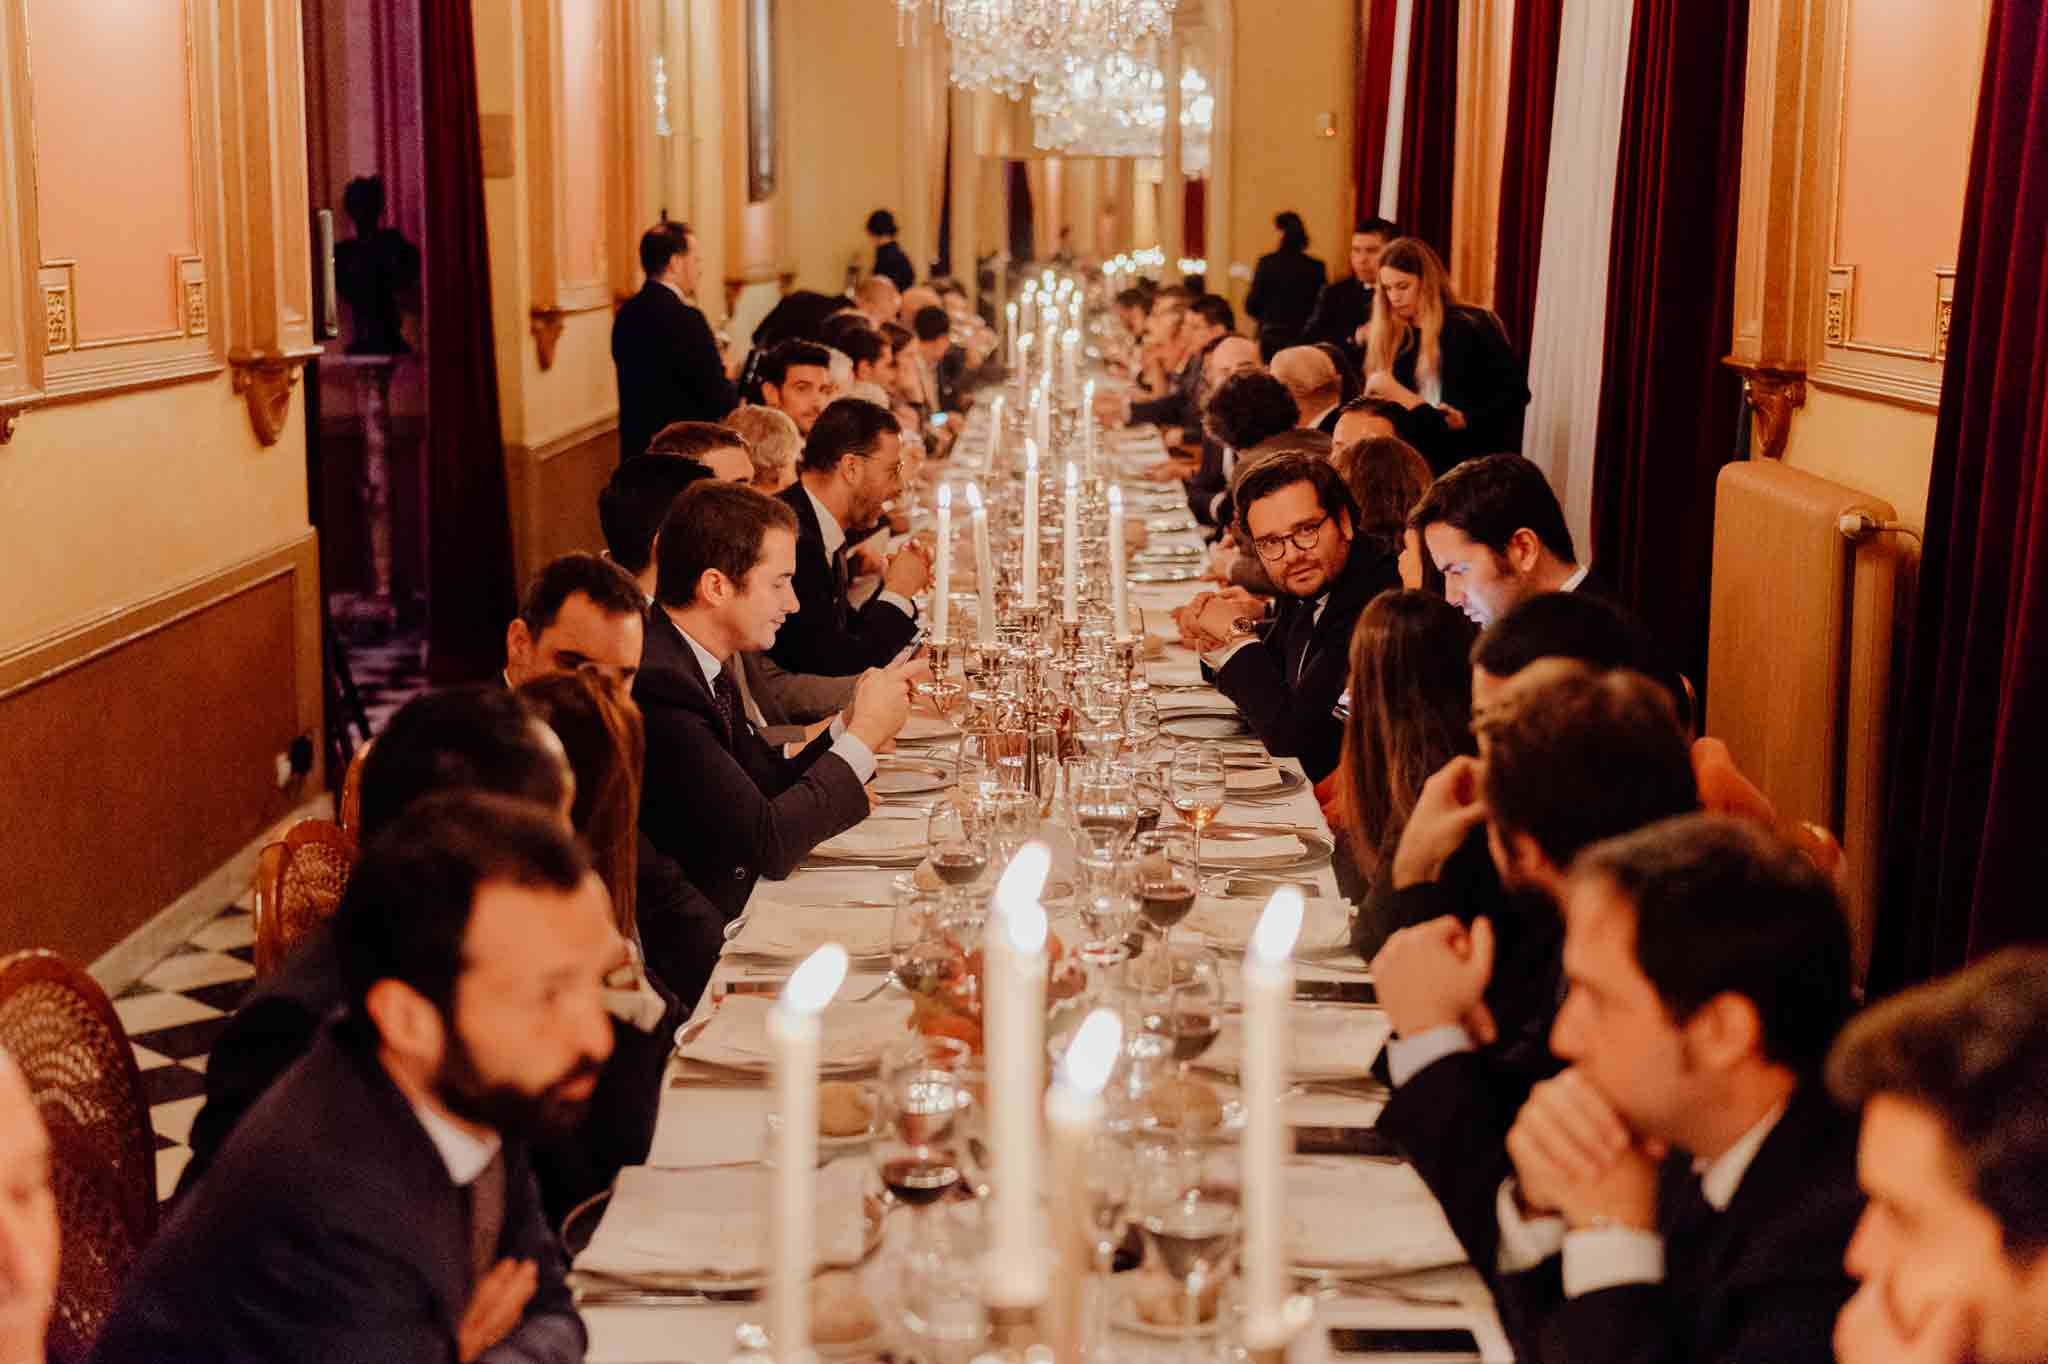 dinner in Circulo del Liceo Spanish luxury brands